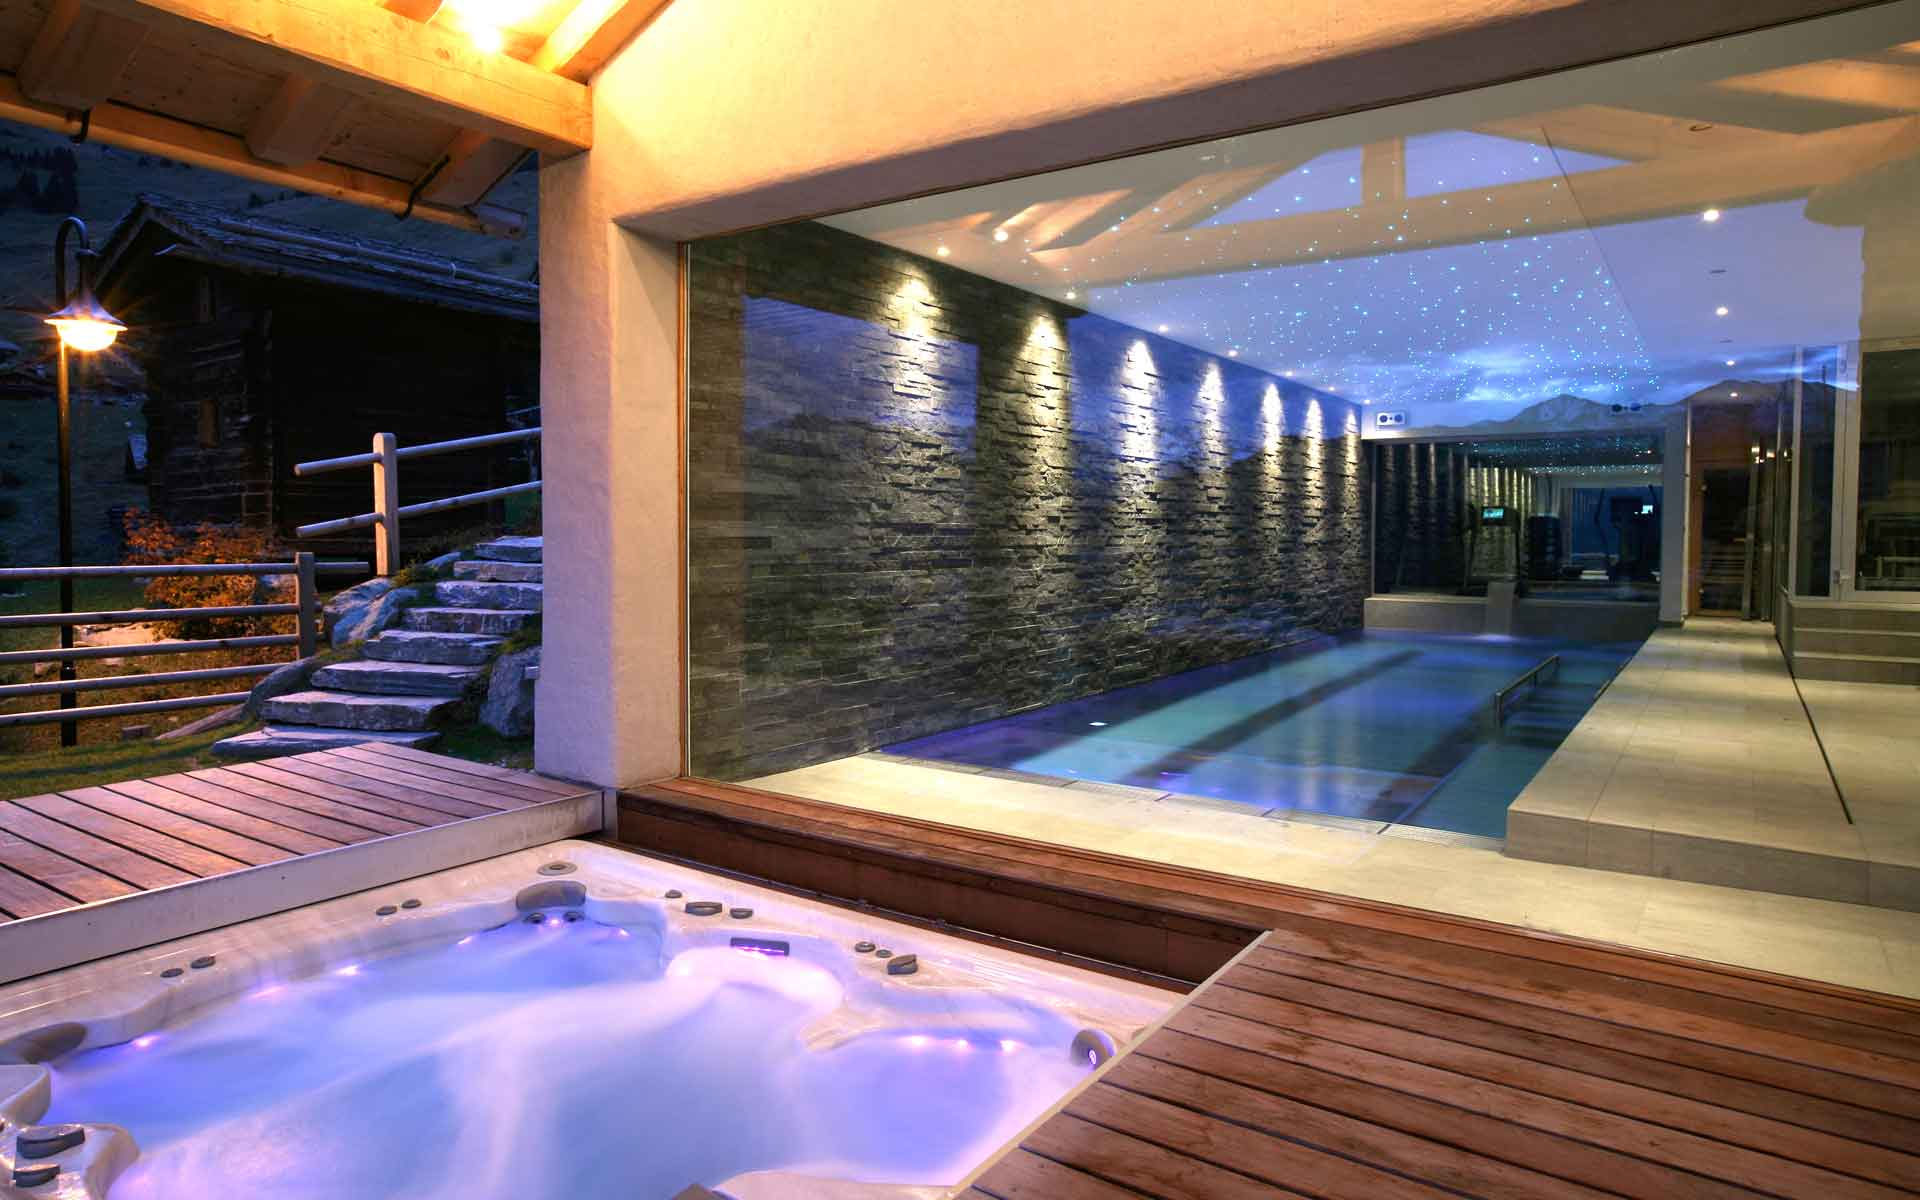 The wellness facilities at this ultra-luxurious chalet in the Alpine resort of Verbier provide respite after a day on the slopes.